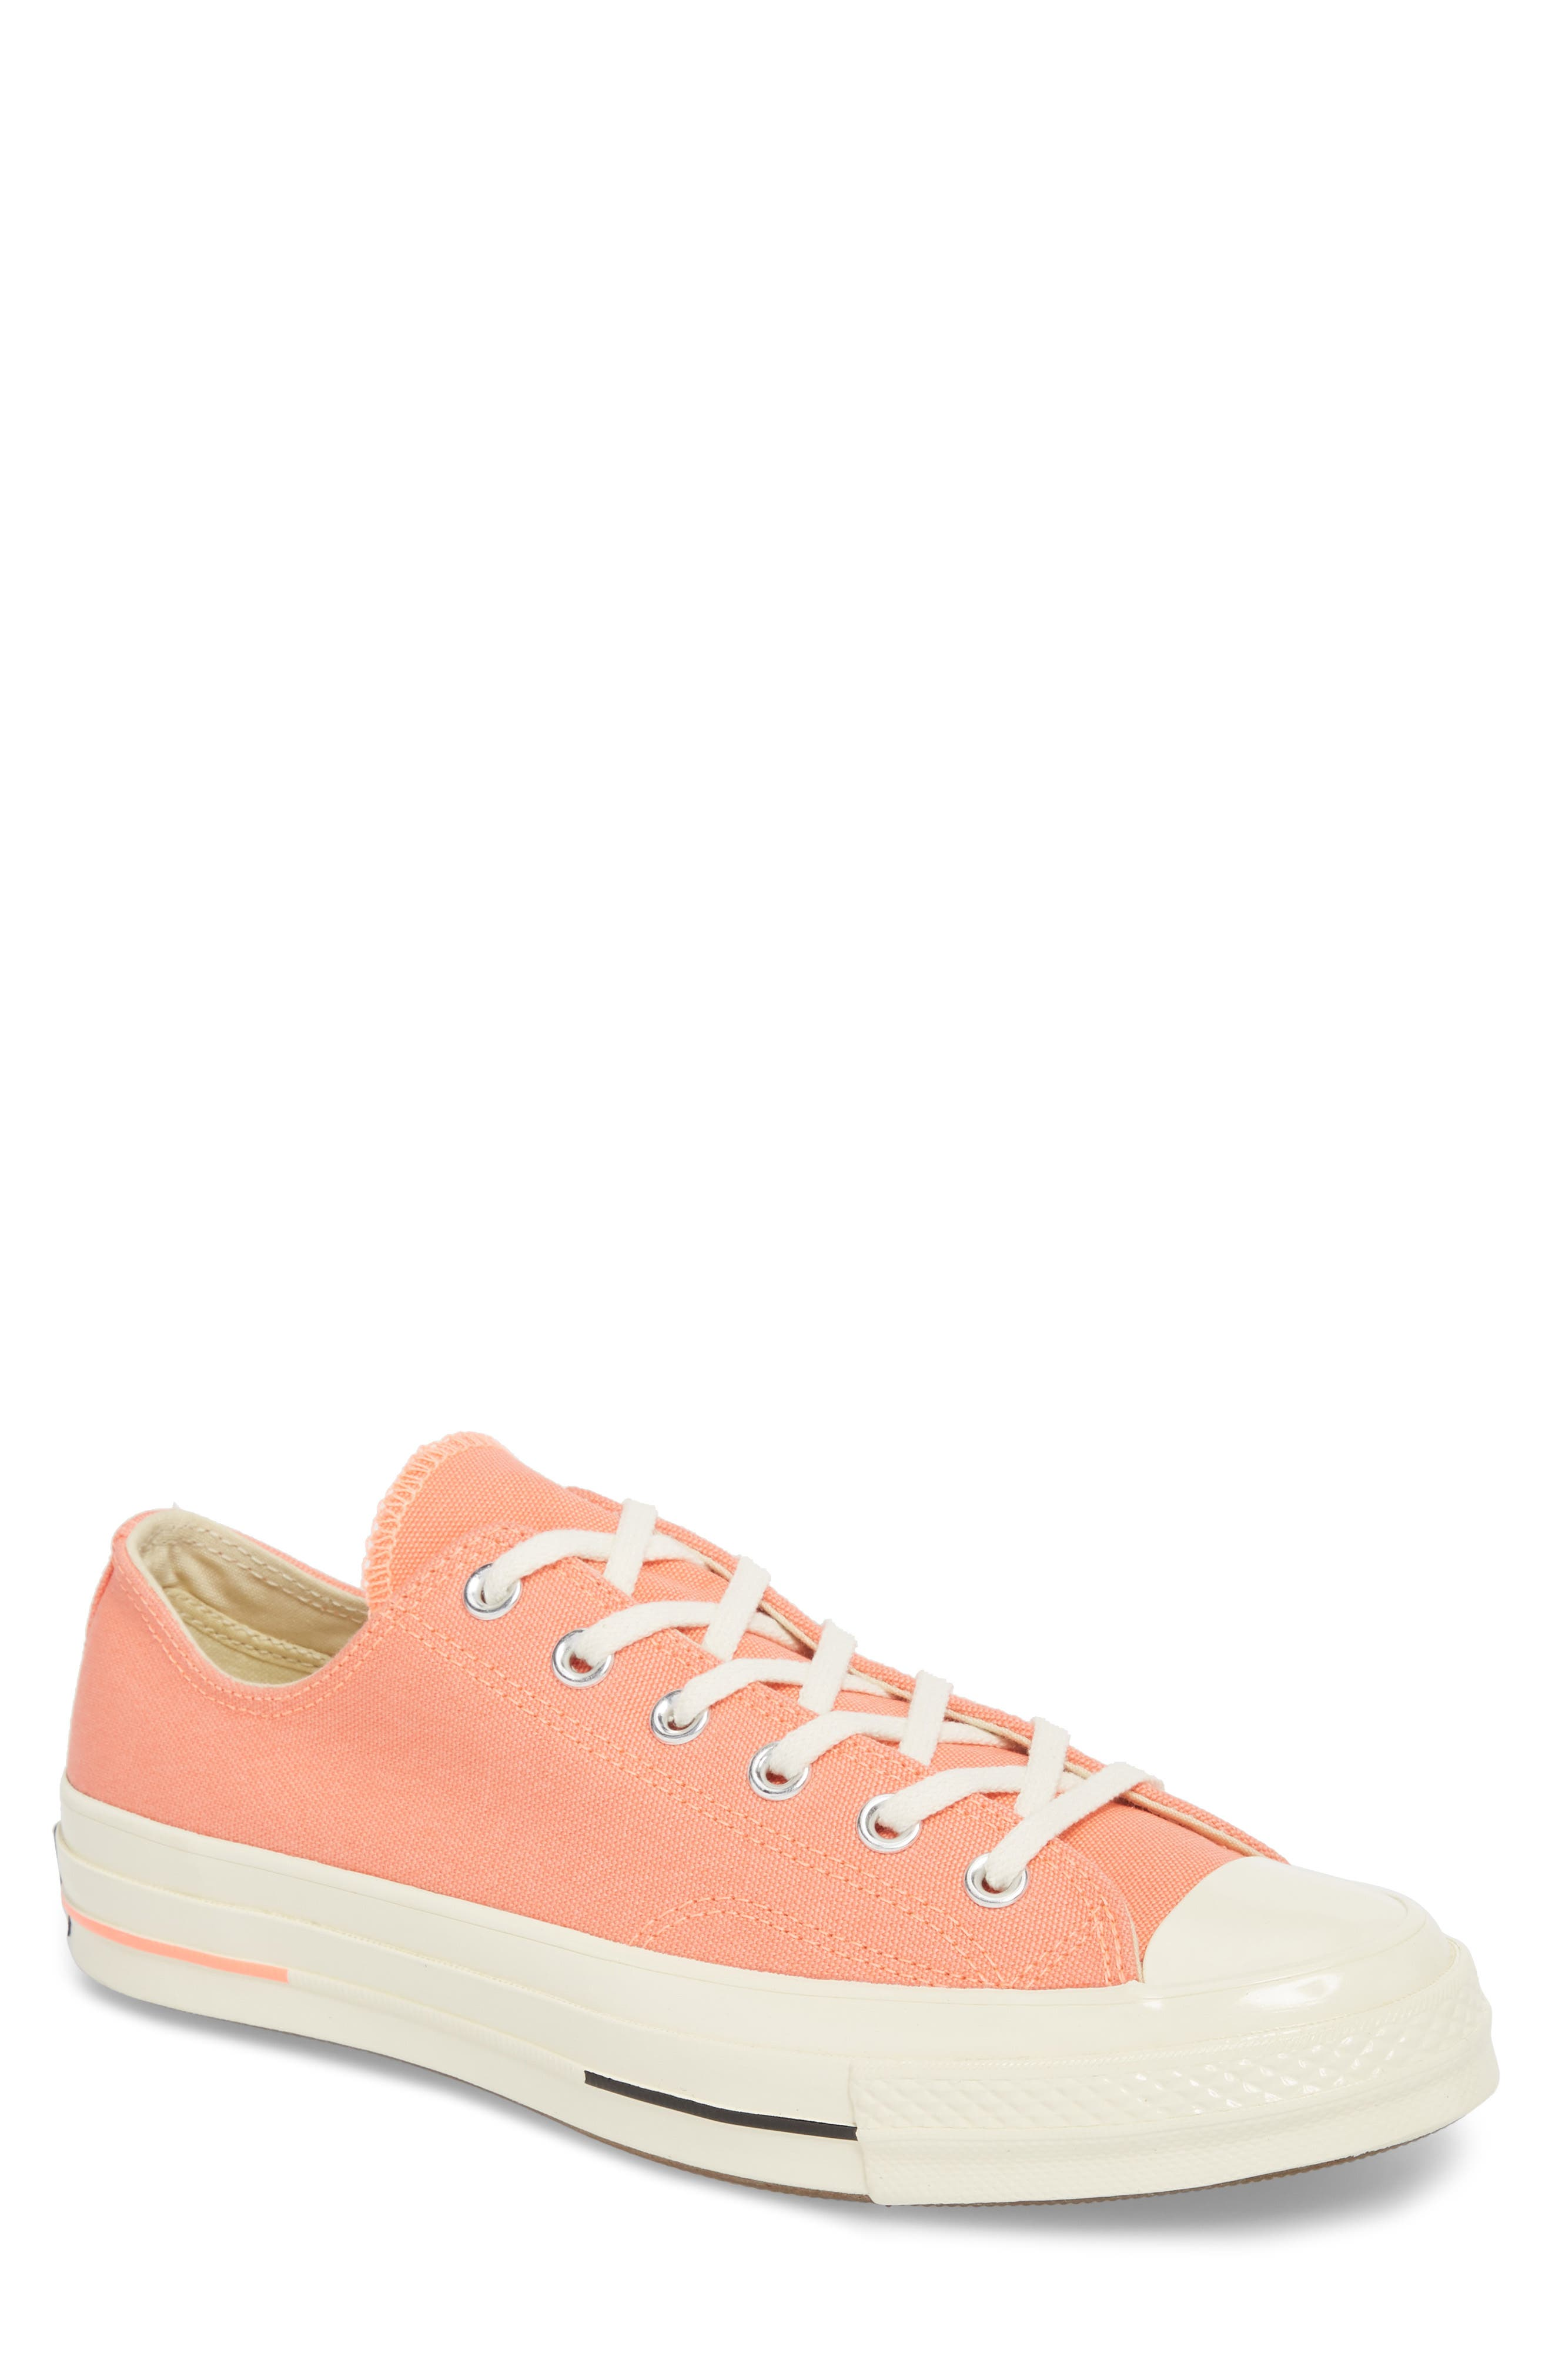 Converse Chuck Taylor® All Star® 70 Bright Low Top Sneaker (Men)